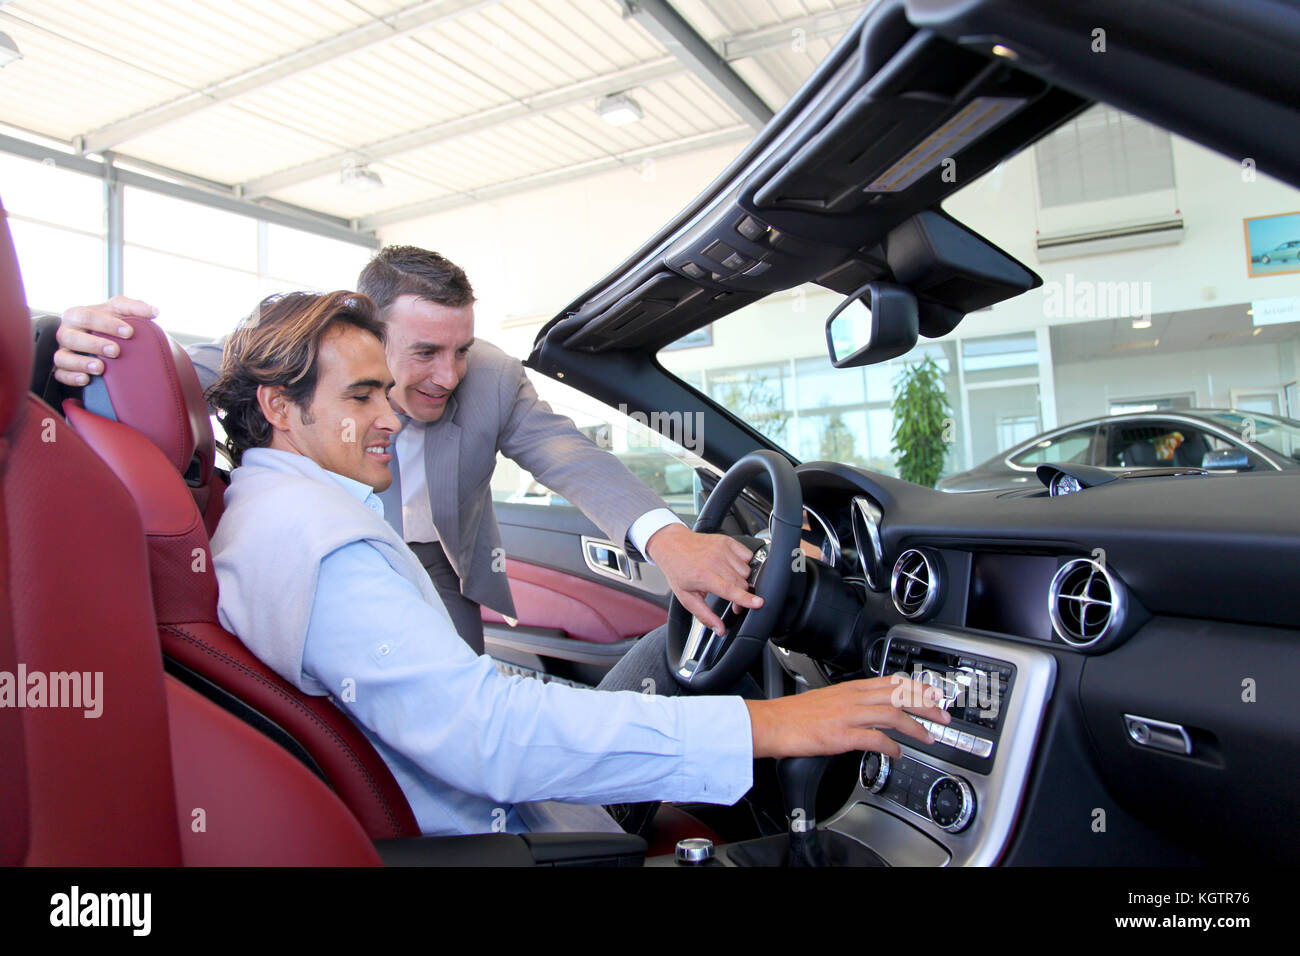 Car seller showing interior details to purchaser - Stock Image